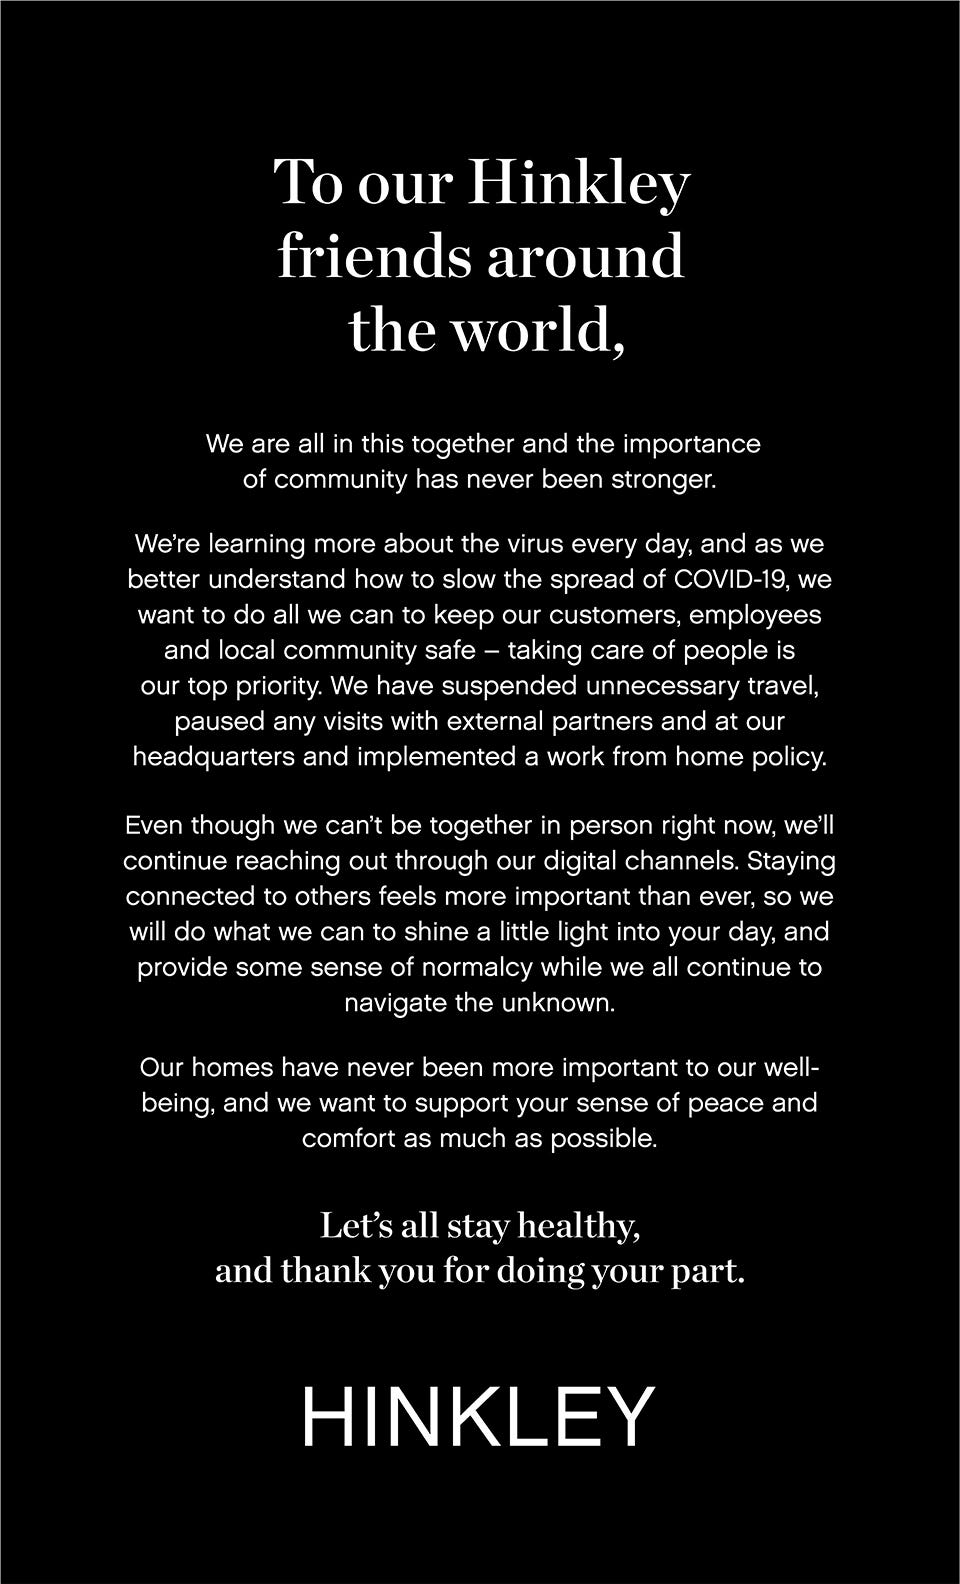 To our Hinkley friends around the world,   We are all in this together and the importance of community has never been stronger.   We're learning more about the virus every day, and as we better understand how to slow the spread of COVID-19, we want to do all we can to keep our customers, employees and local community safe – taking care of people is our top priority. We have suspended unnecessary travel, paused any visits with external partners and at our headquarters and implemented a work from home policy.   Even though we can't be together in person right now, we'll continue reaching out through our digital channels. Staying connected to others feels more important than ever, so we will do what we can to shine a little light into your day, and provide some sense of normalcy while we all continue to navigate the unknown.   Our homes have never been more important to our well-being, and we want to support your sense of peace and comfort as much as possible.   Let's all stay healthy.